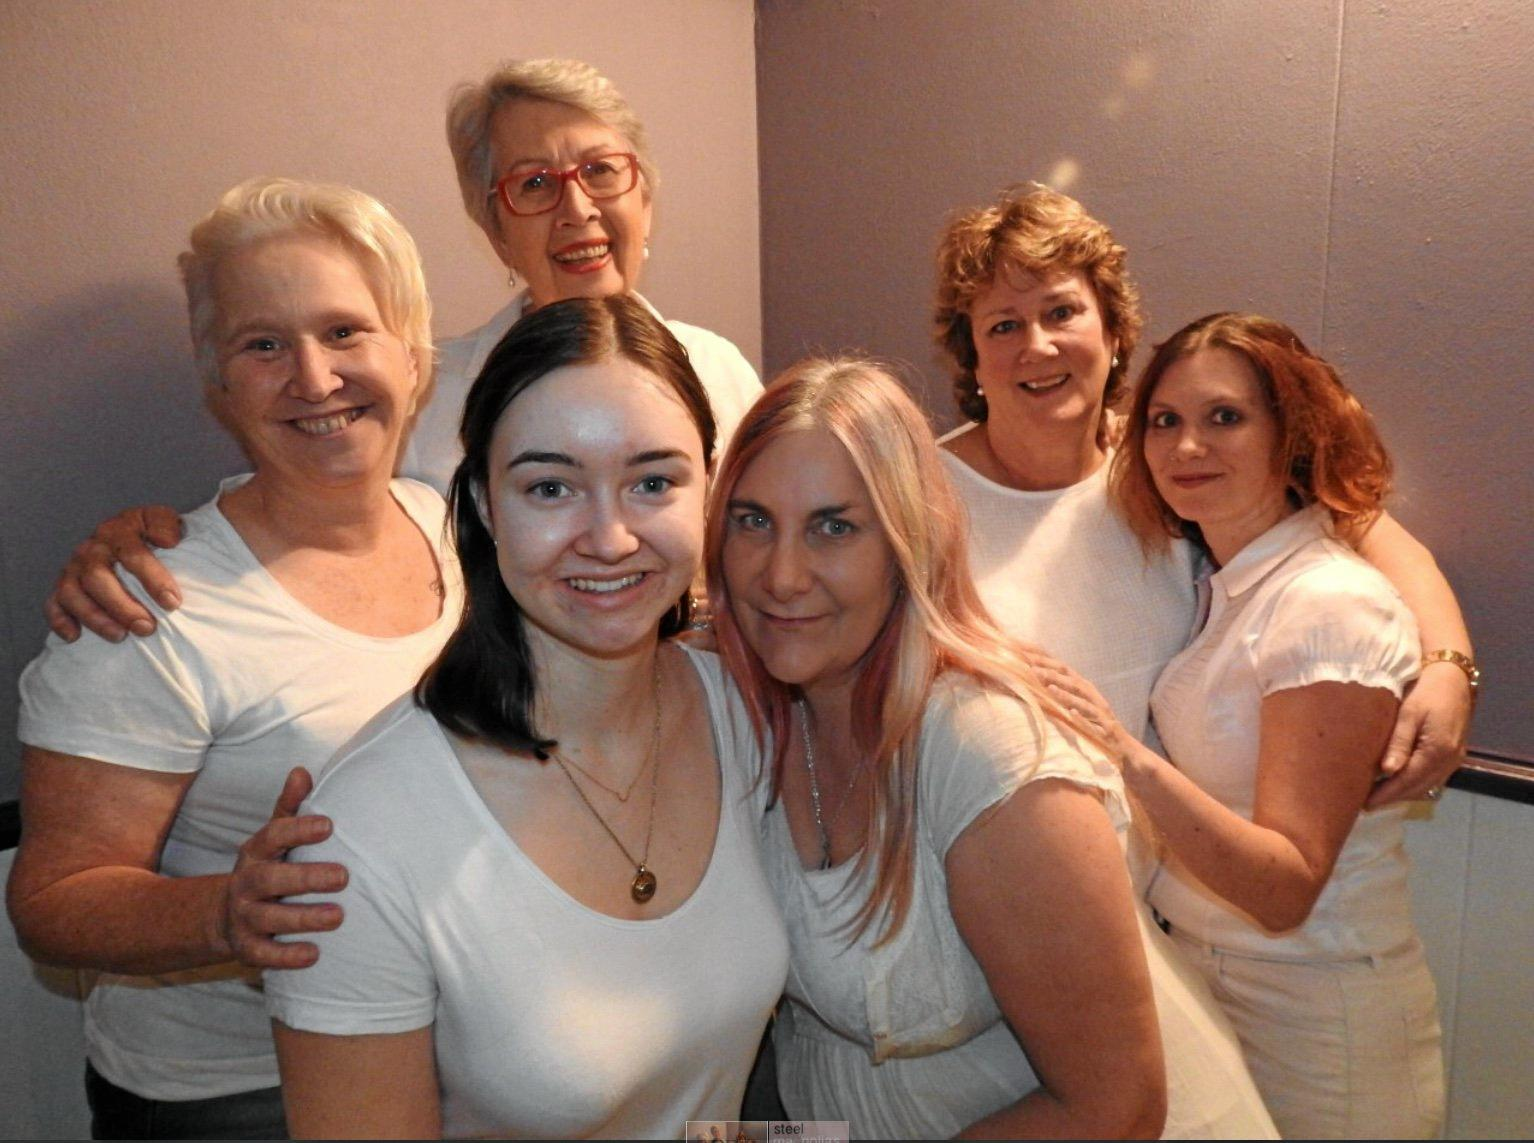 FAMOUS PLAY: Jacquie McCalman, Elyse Knowles, Jenny DowelL, Sinead Fell, Lisa Walmsley and Sharon Brodie are part of the production of Steel Magnolias by Lismore Theatre Company.